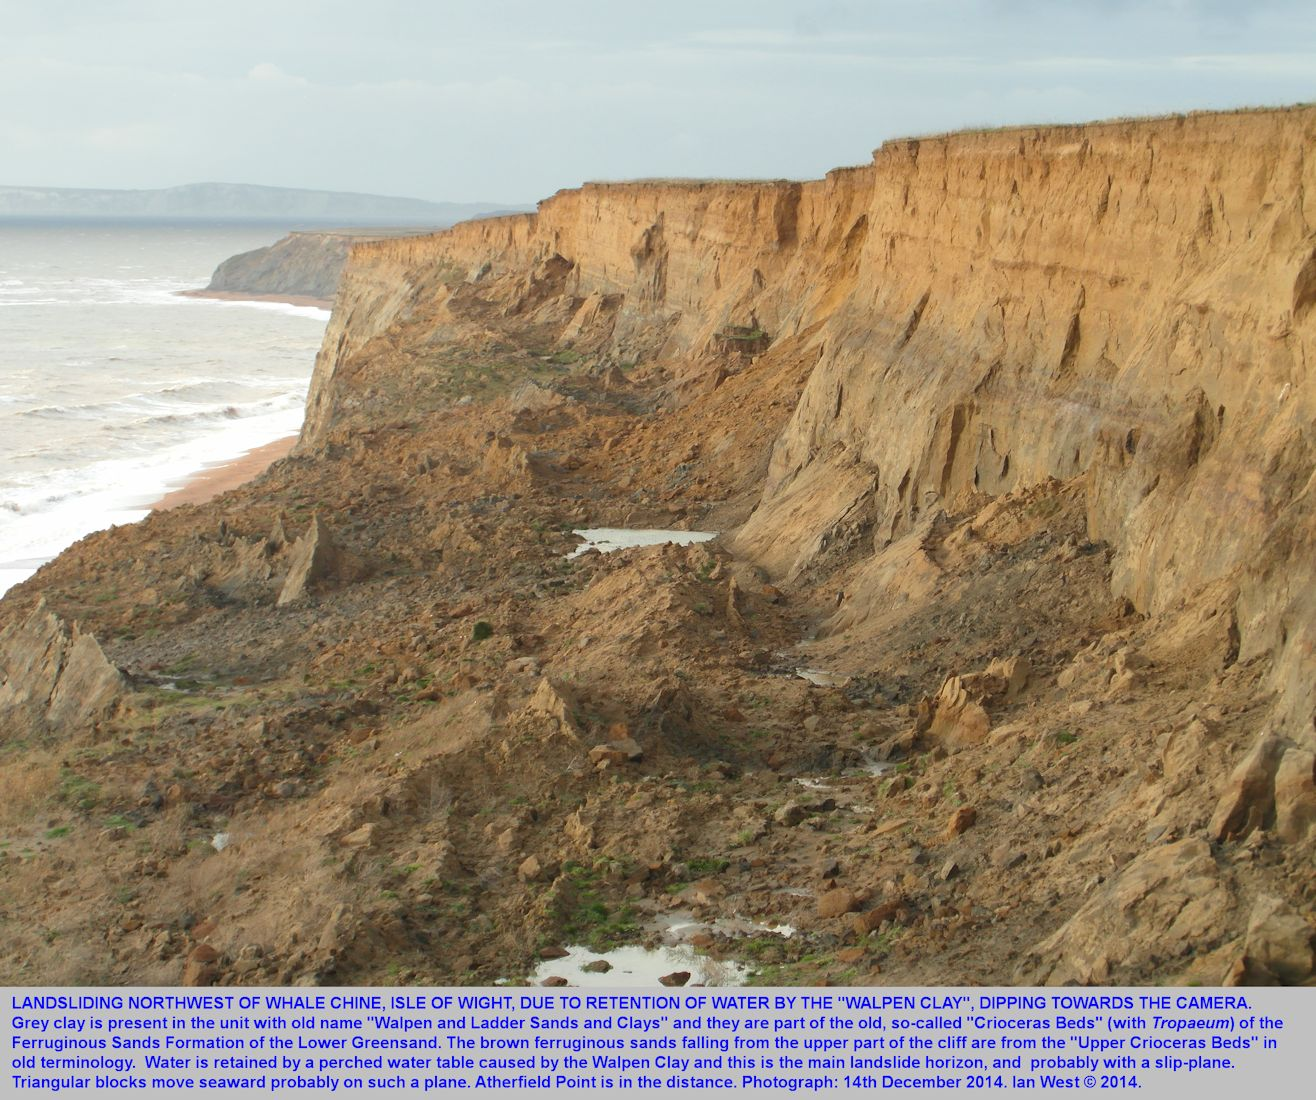 Water held up by the Walpen Clay, Lower Greensand, causes landslides with pools of water, and perhaps a slip-plane in the cliff northwest of Whale Chine, Isle of Wight, as seen on 14th December 2014